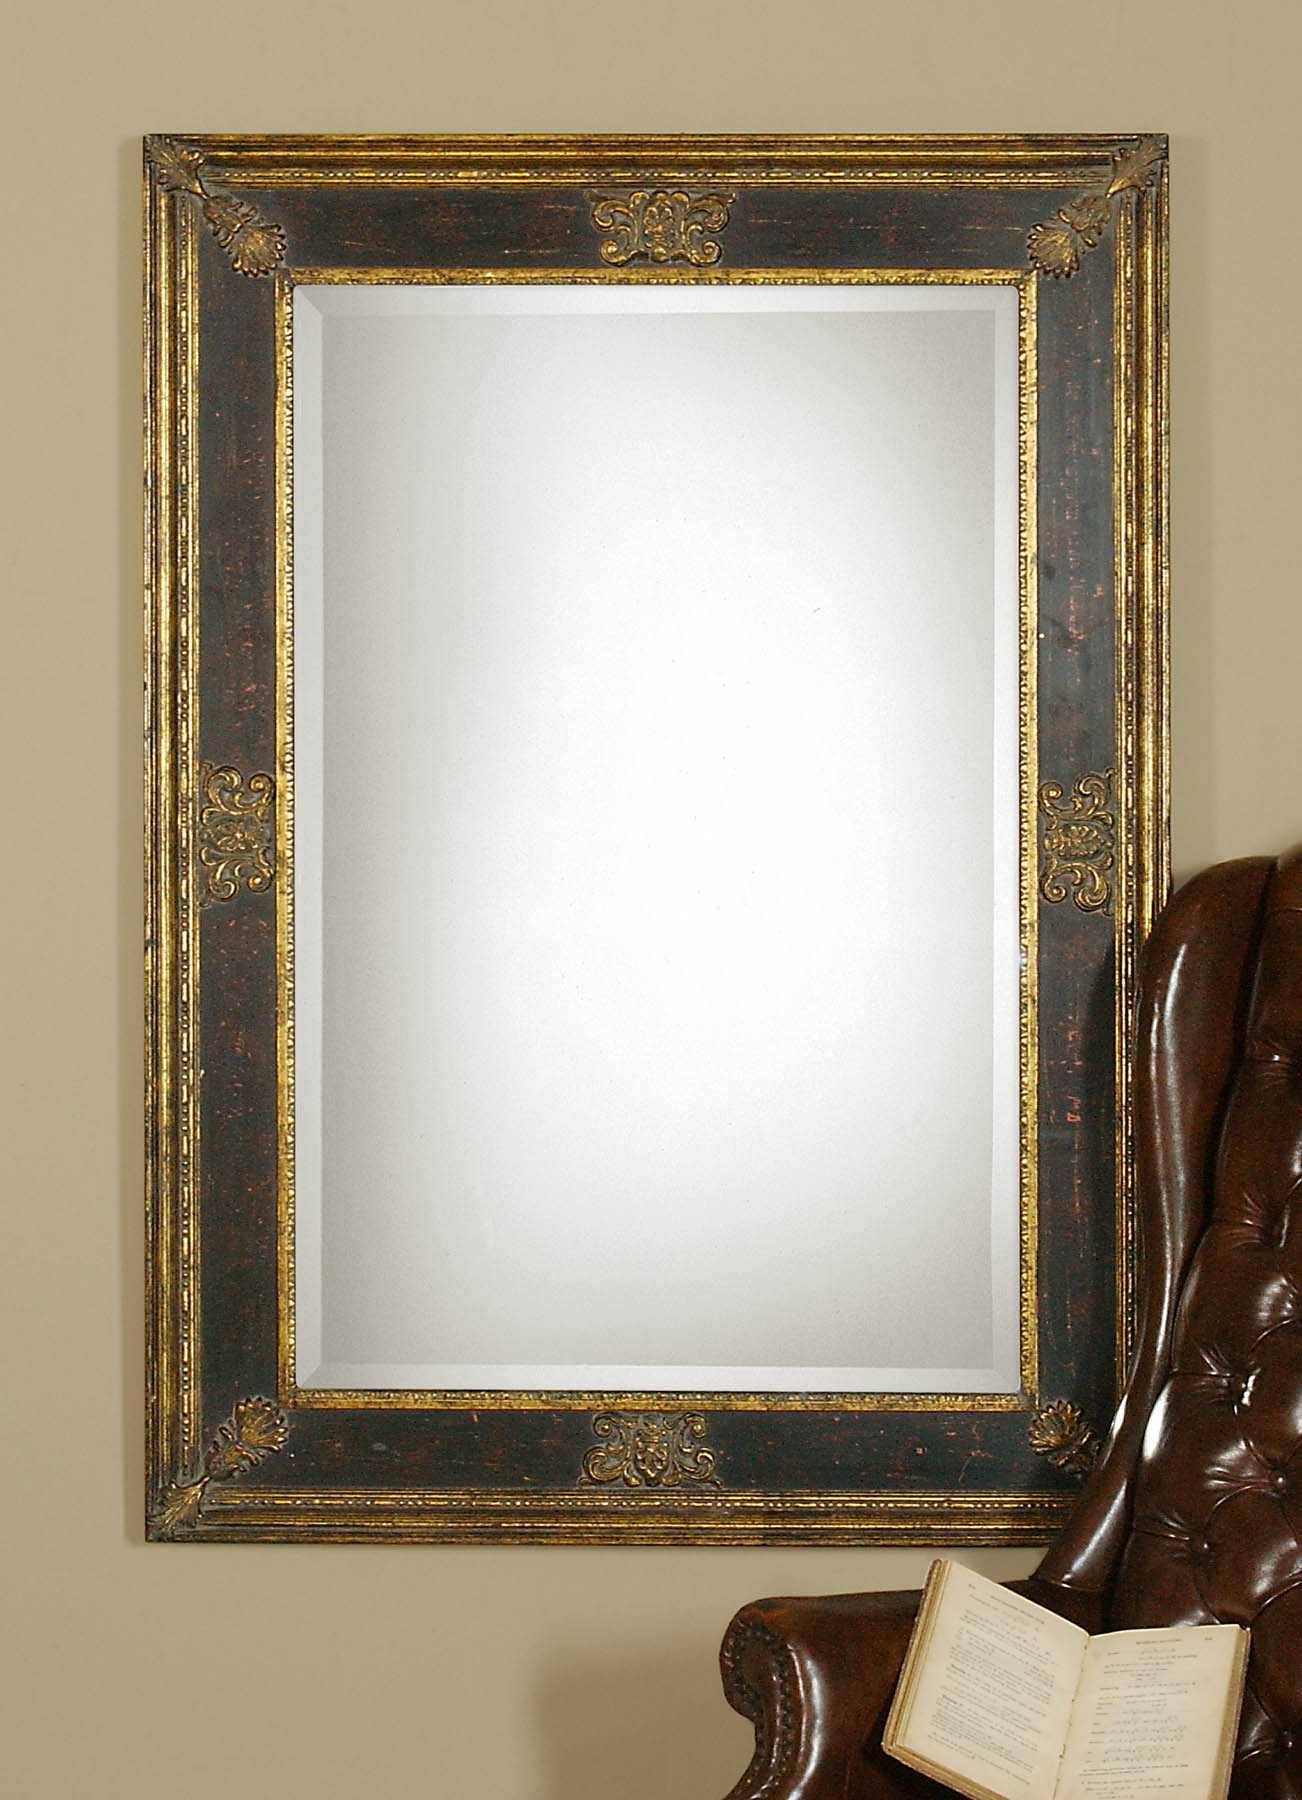 commercial seating chairs chair gym australia uttermost cadence 34 x 46 small antique gold wall mirror   ut11207b